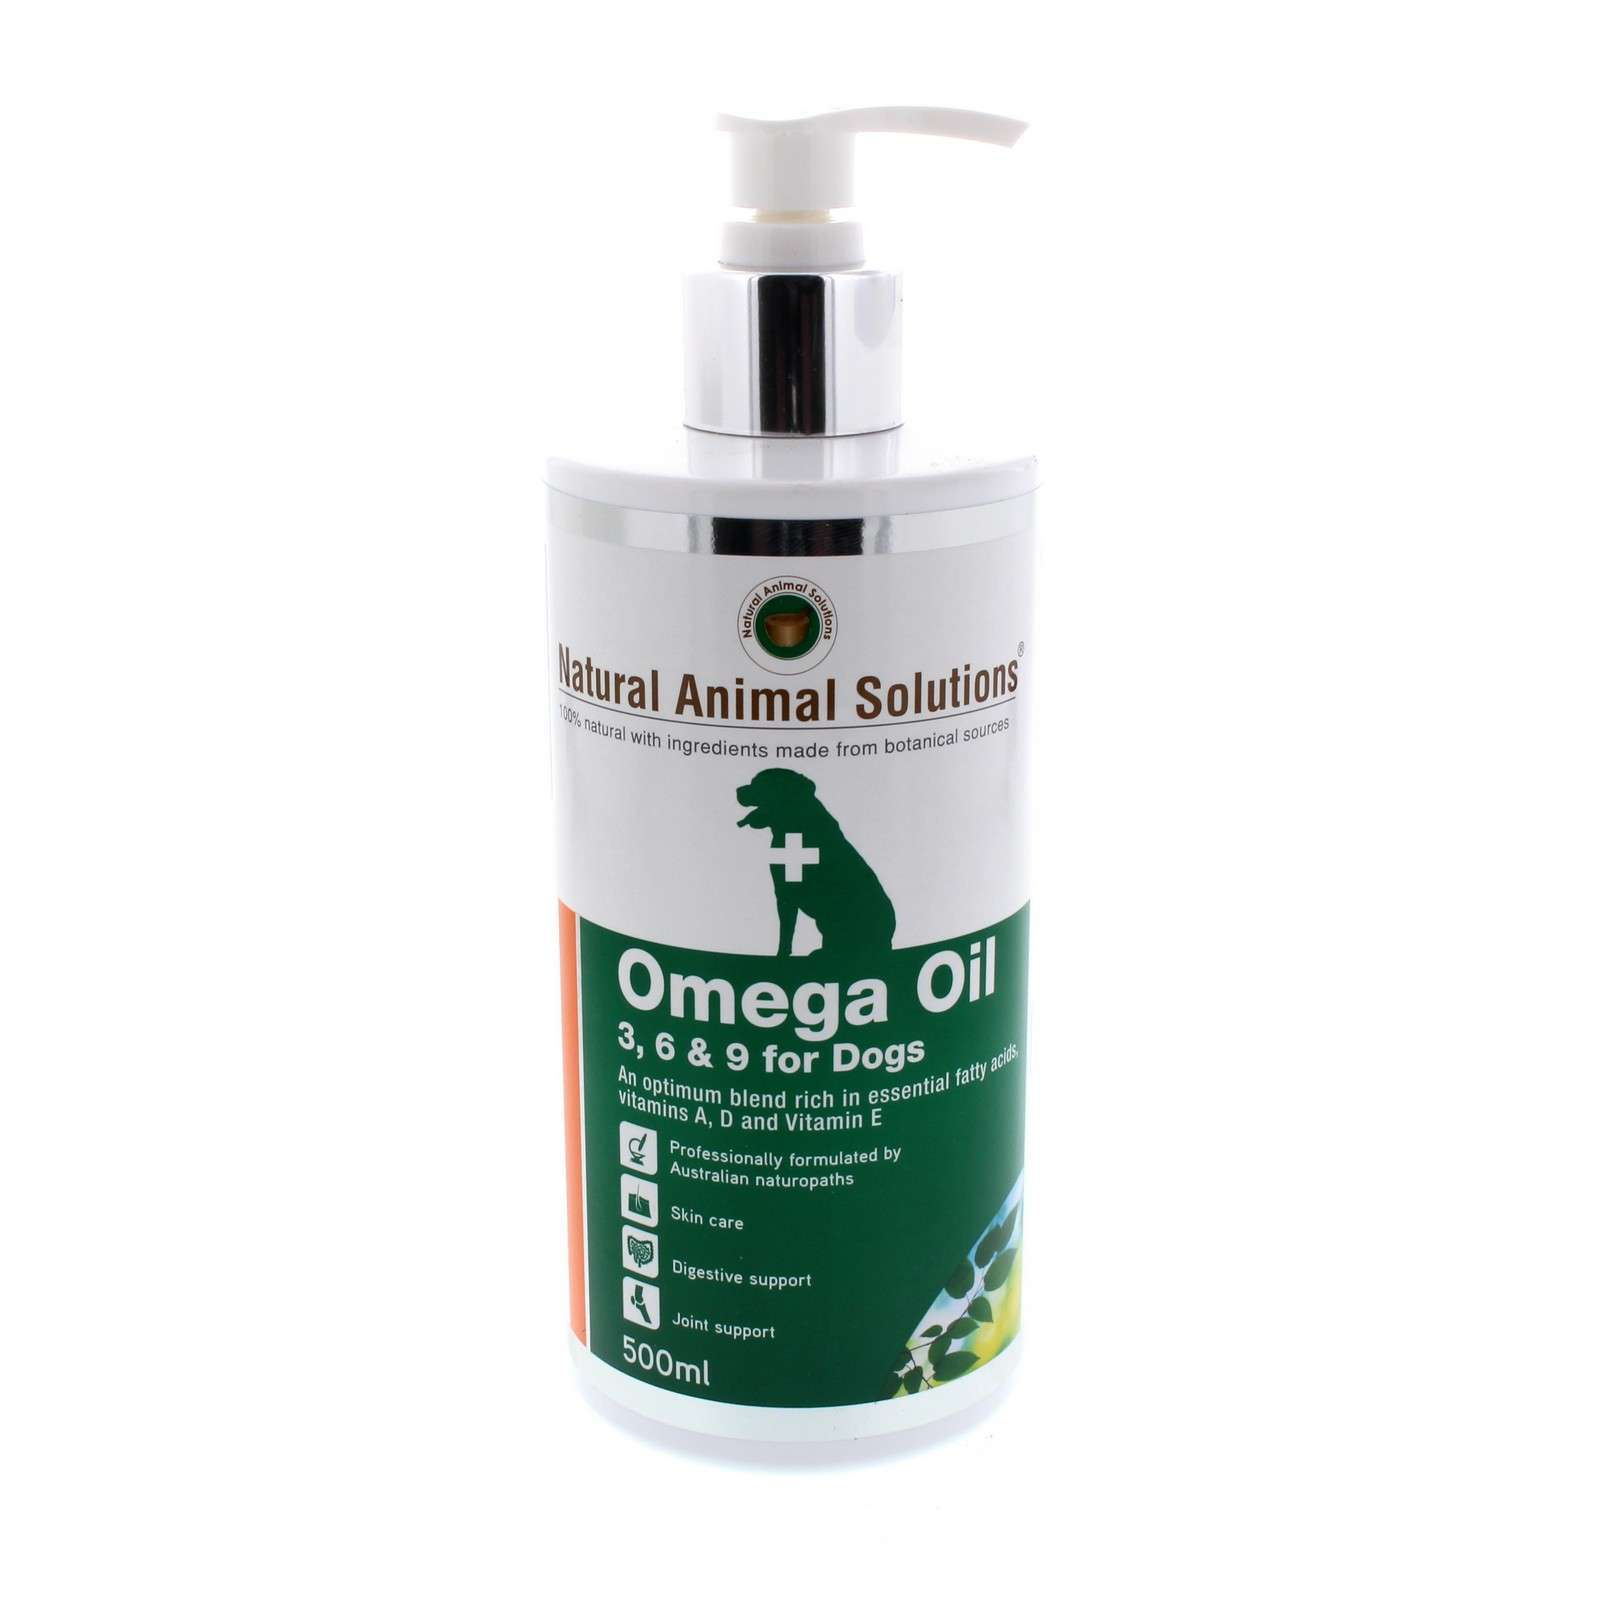 Omega Oil For Dogs Rich in Essential Vitamins 500ml Natural Animal Solutions